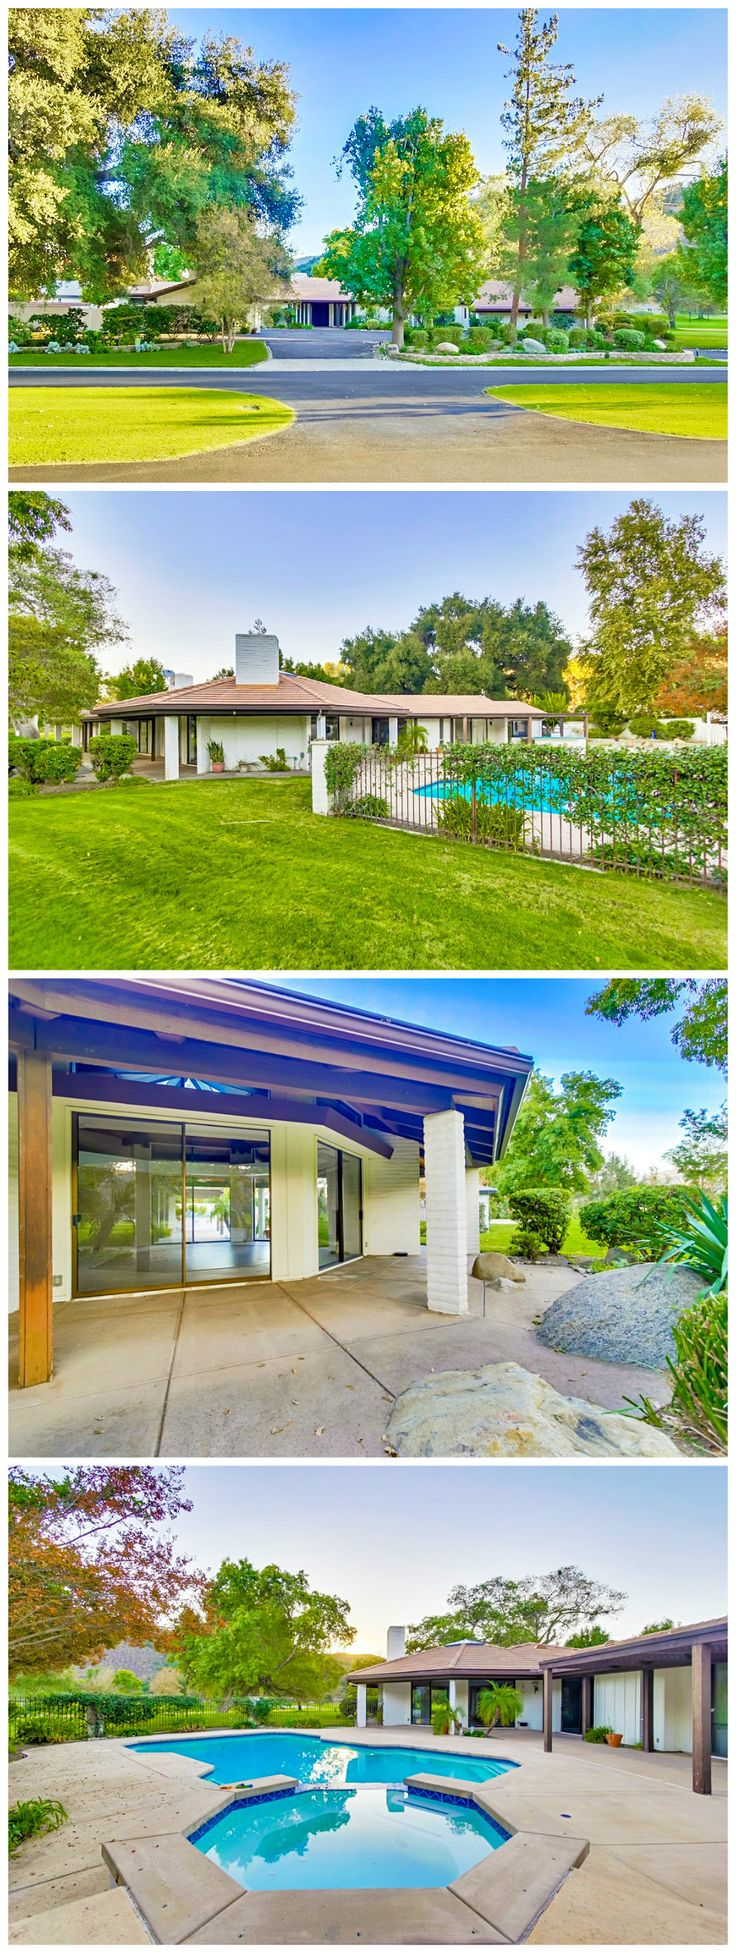 Upgraded Pauma Valley home with private pool and spa. http://www.teamaguilar.com/san-diego-ca-homes/16135-pauma-valley-pauma-valley-ca-92061-2000178949/